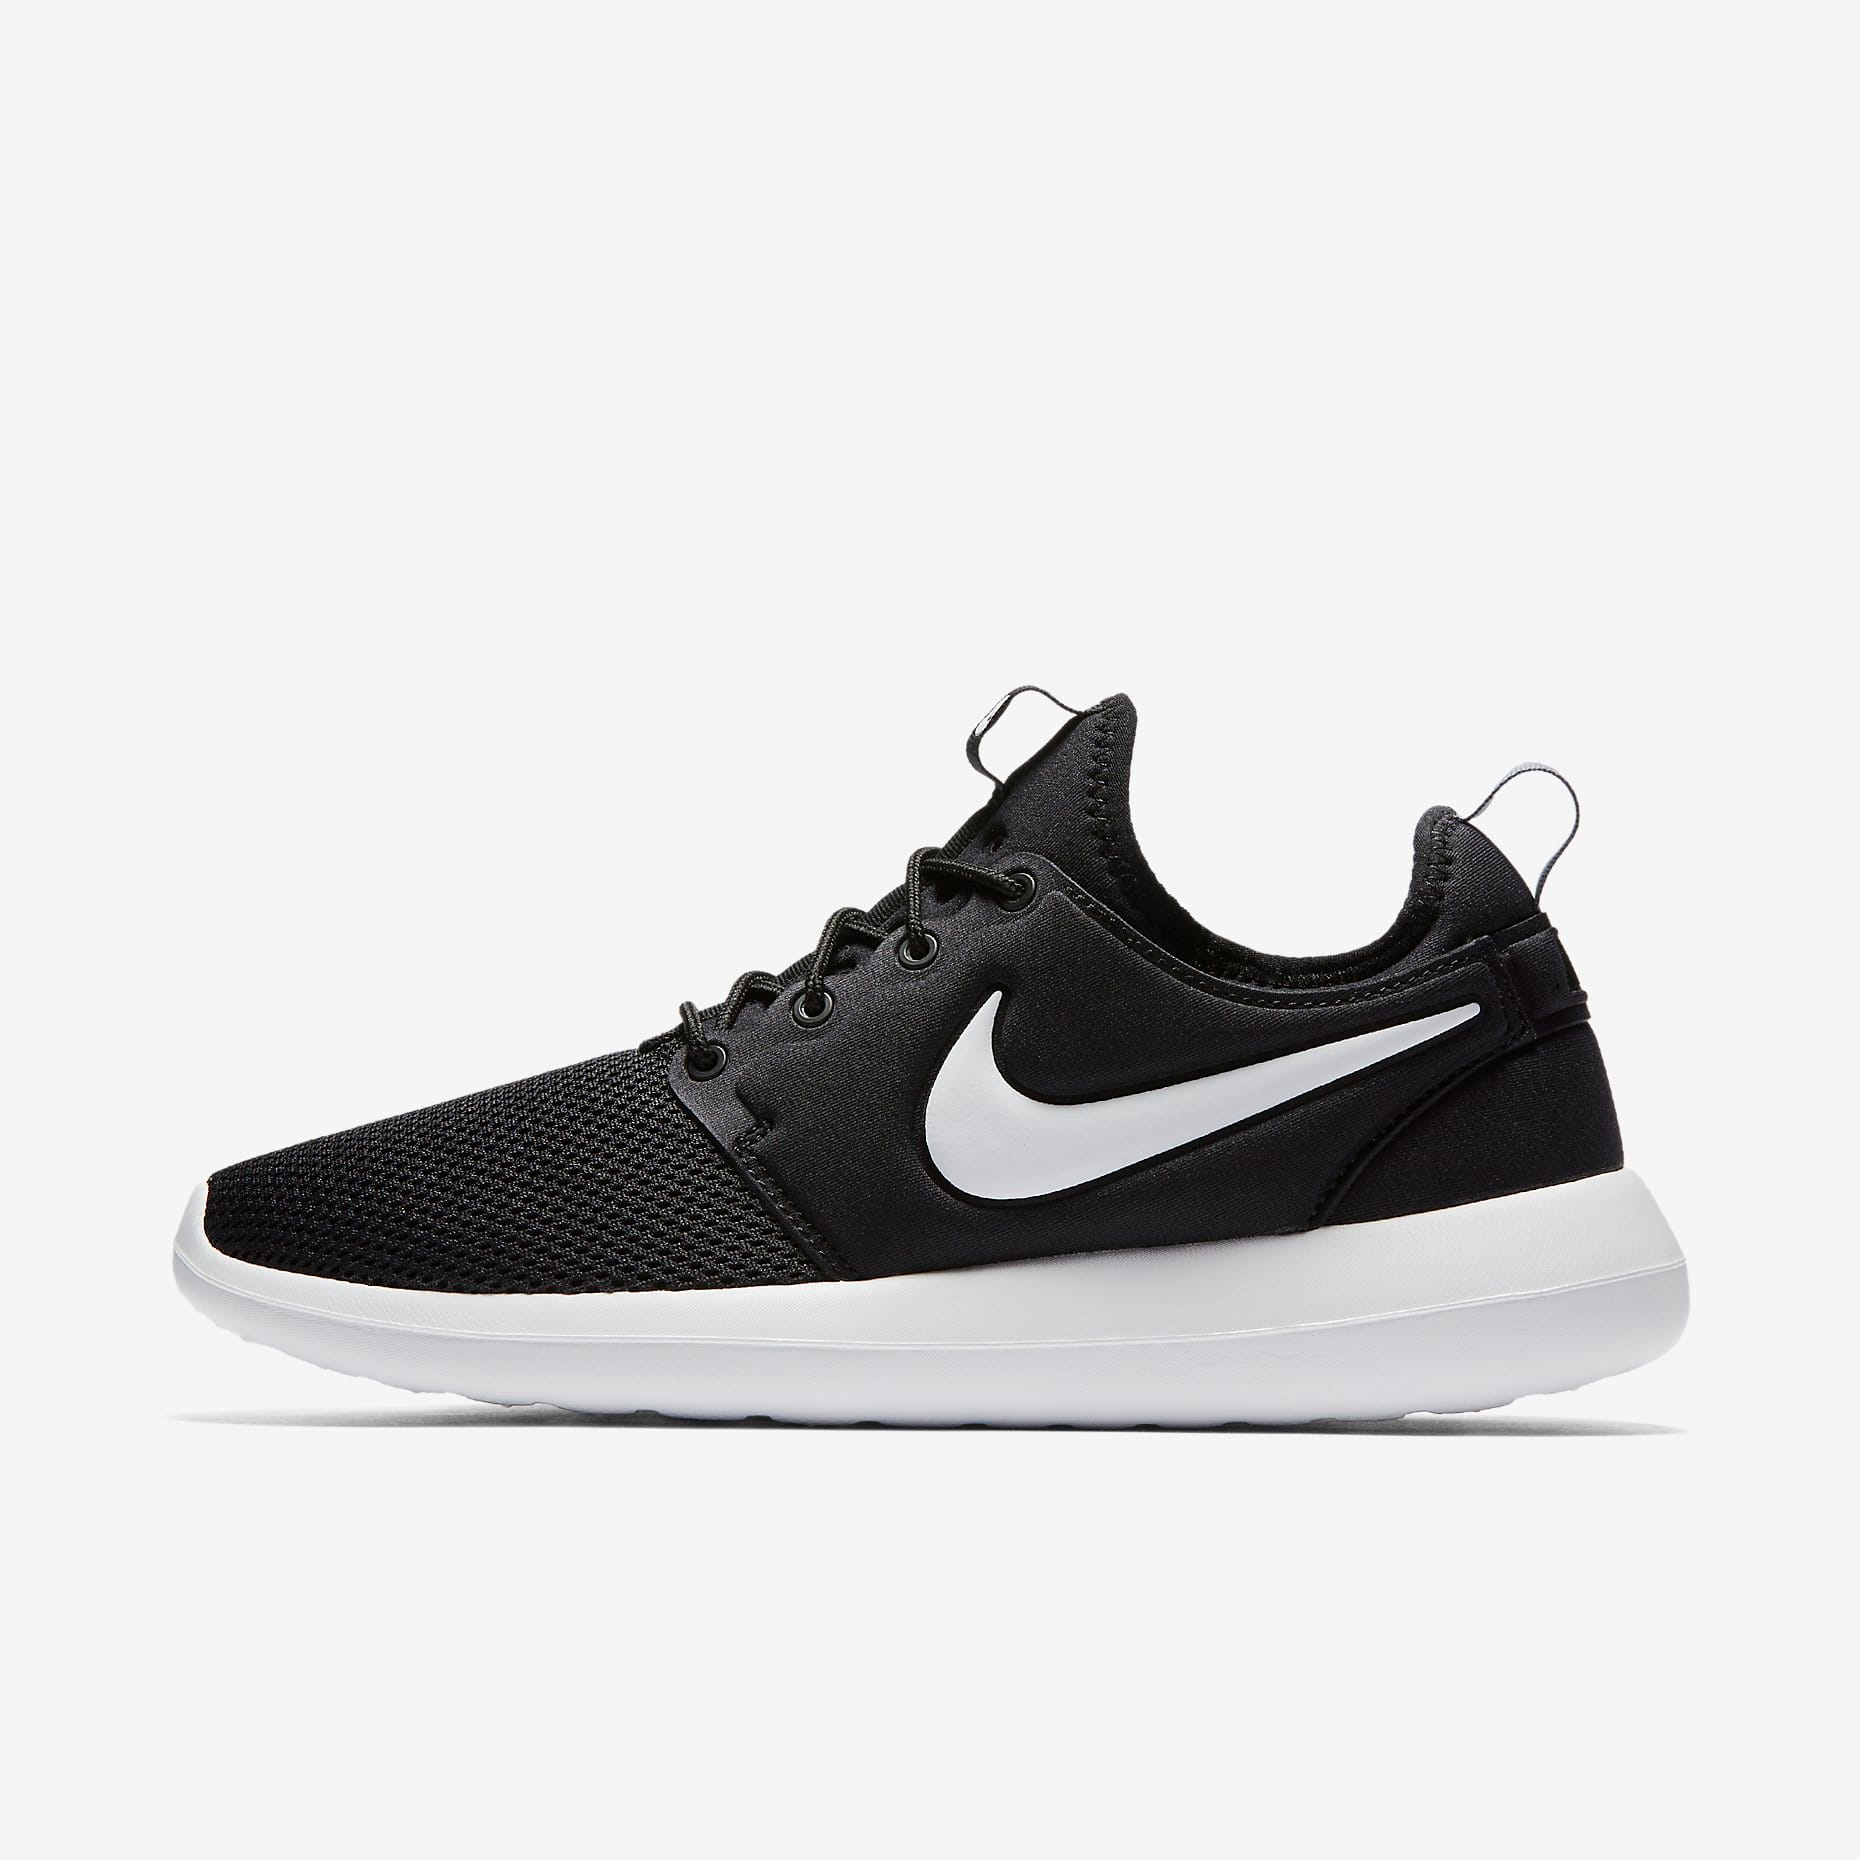 0c92d83adb6c9 ... Roshe Two Flyknit (Various Colors)  79.97  More Nike Sale Shoes. Deal  Image  Deal Image. Deal Image